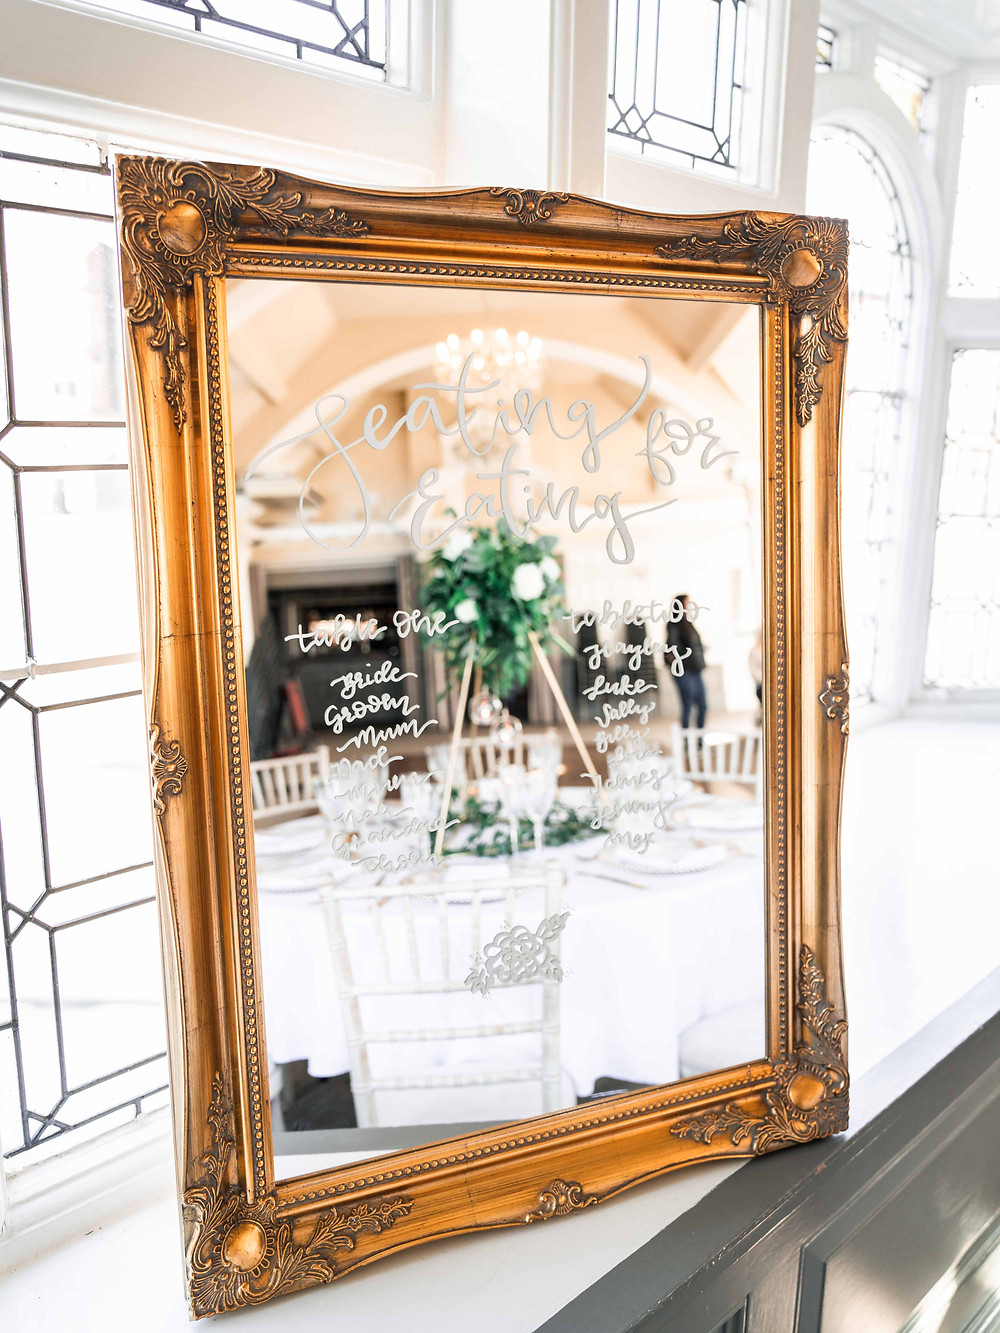 Leicestershire wedding photography in film and digitally. Leicester bespoke mirror wedding signage.